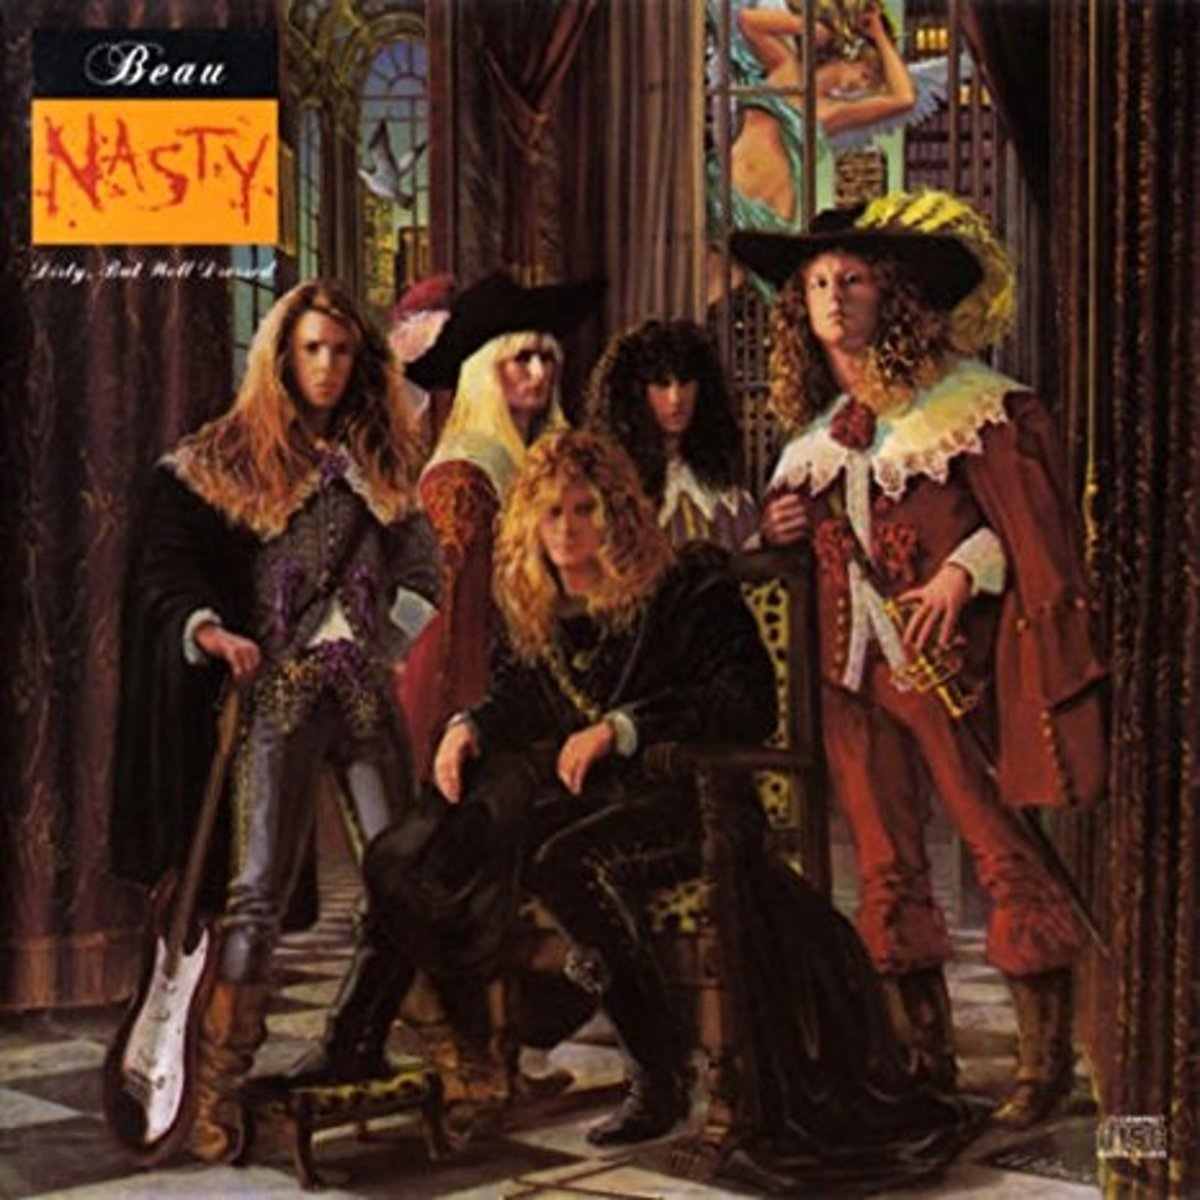 "Forgotten Hard Rock Albums: Beau Nasty, ""Dirty, but Well Dressed"""